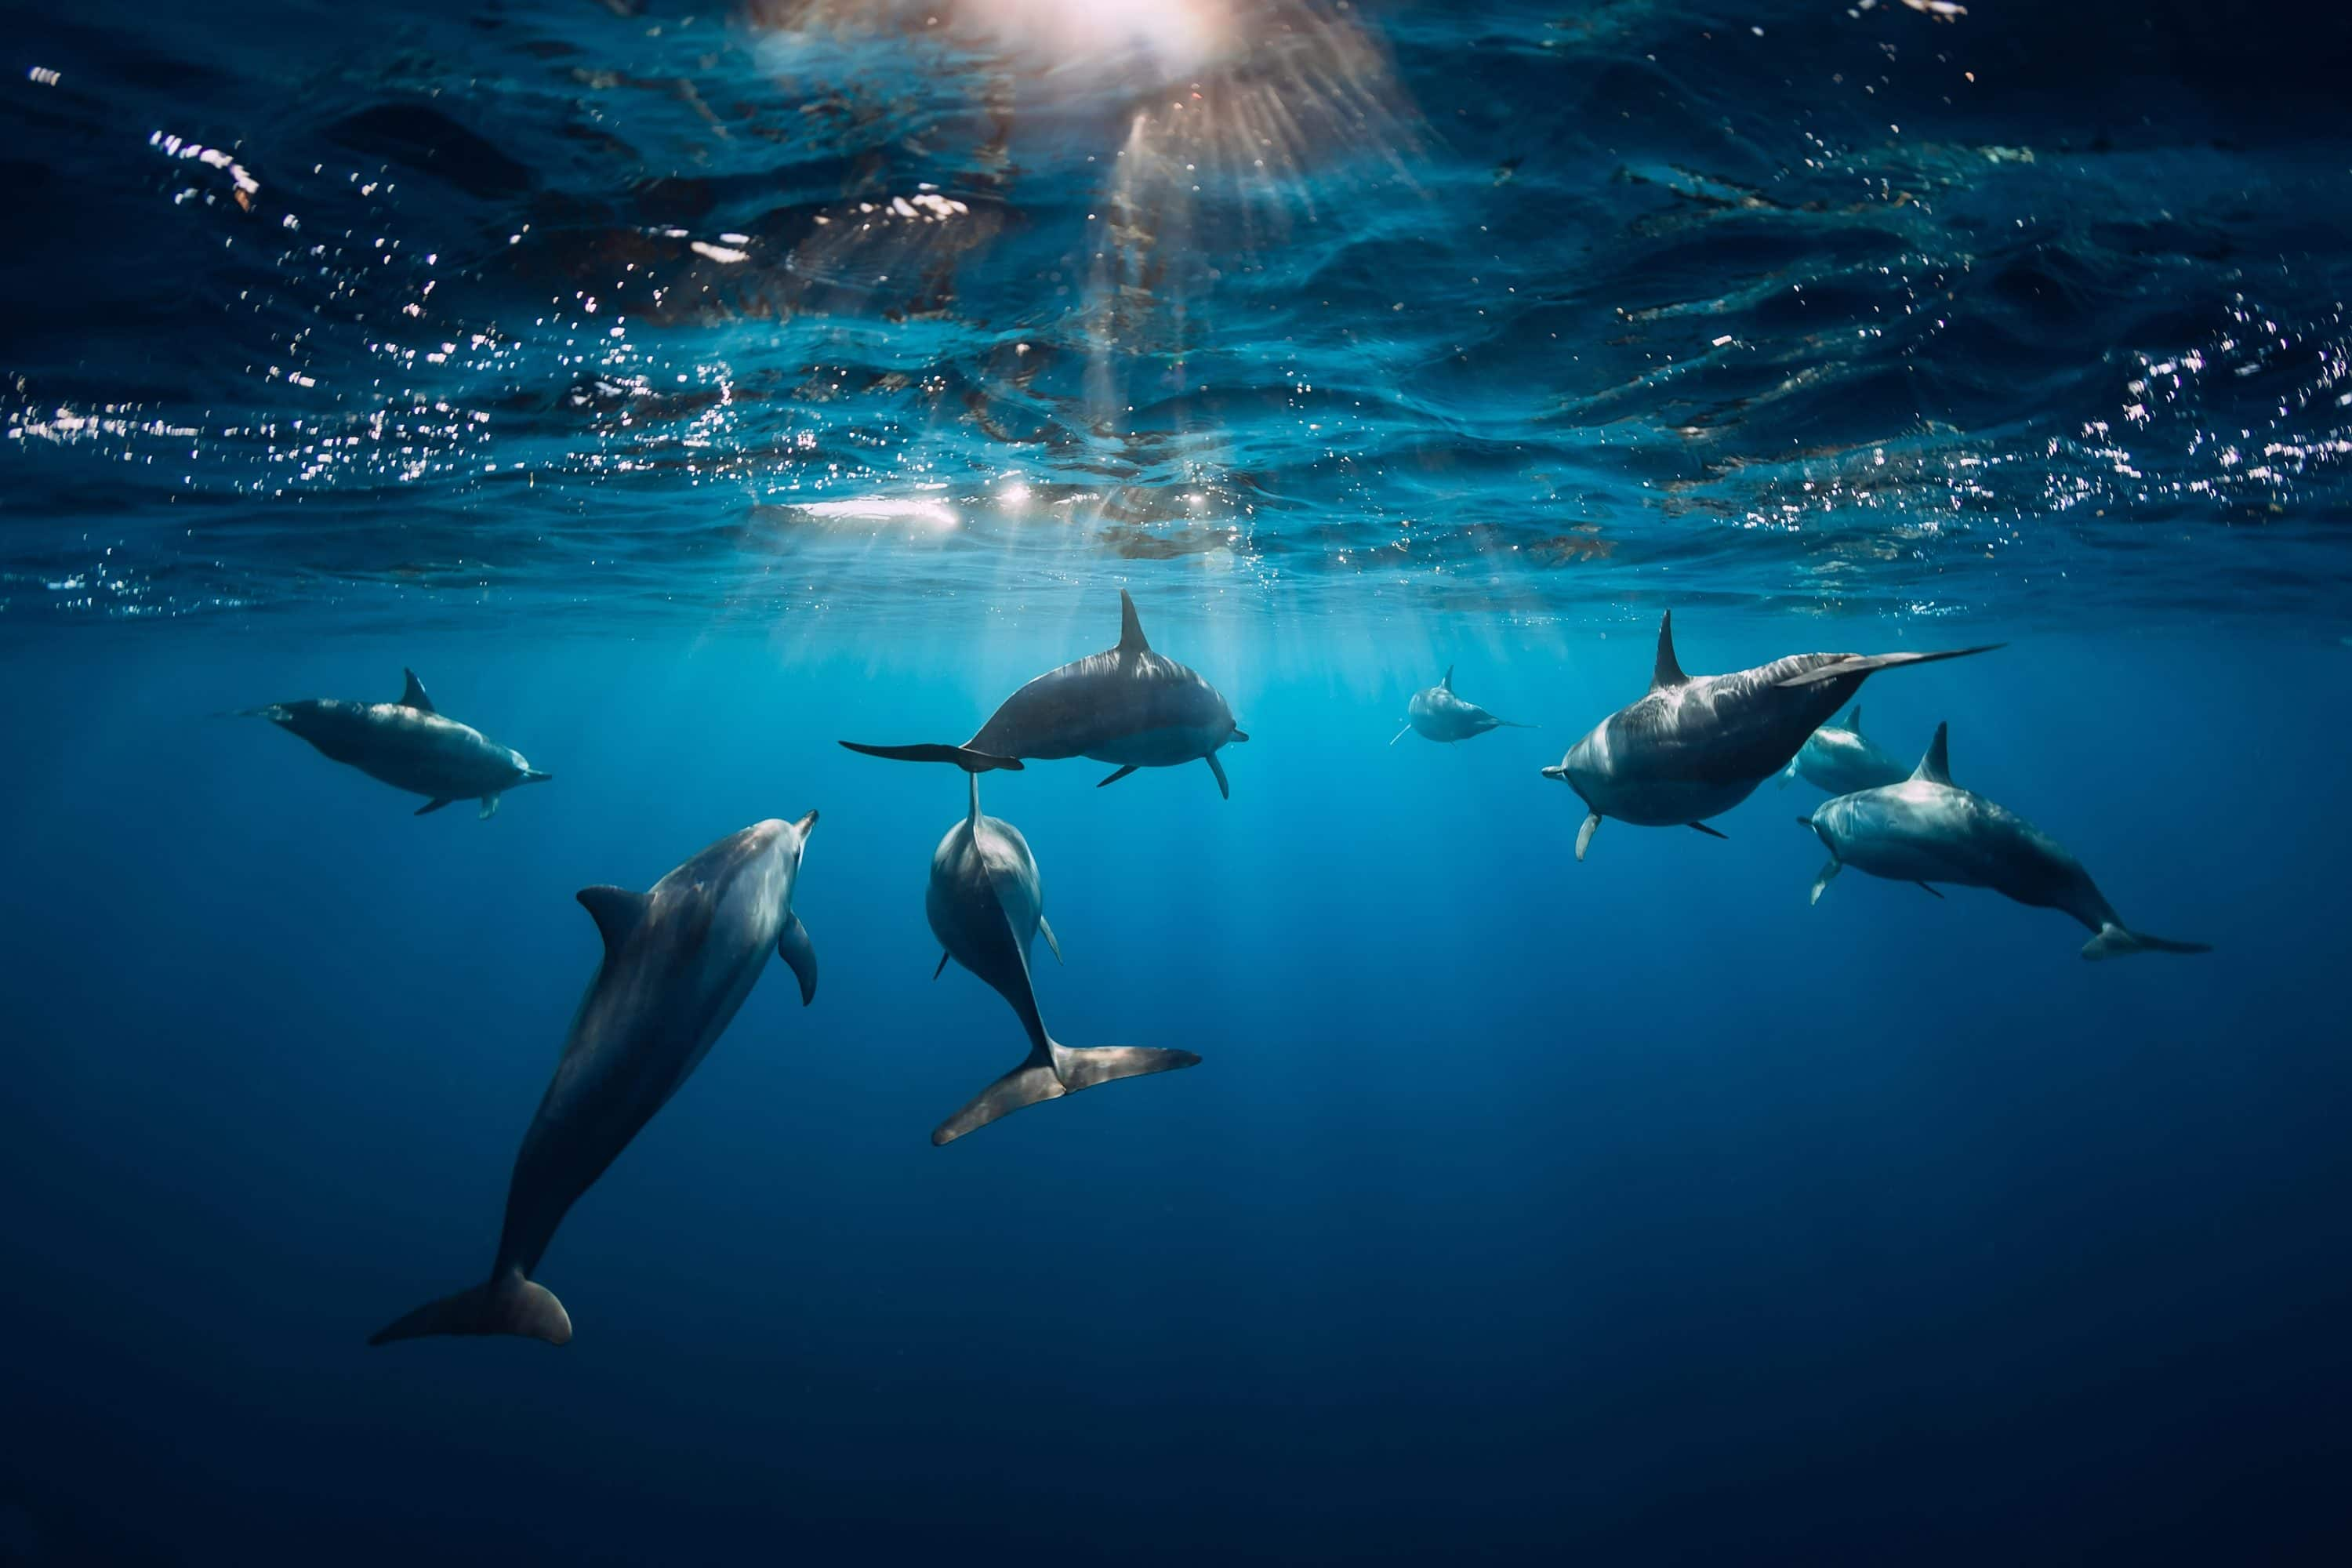 A pod of dolphins swim beneath the surface